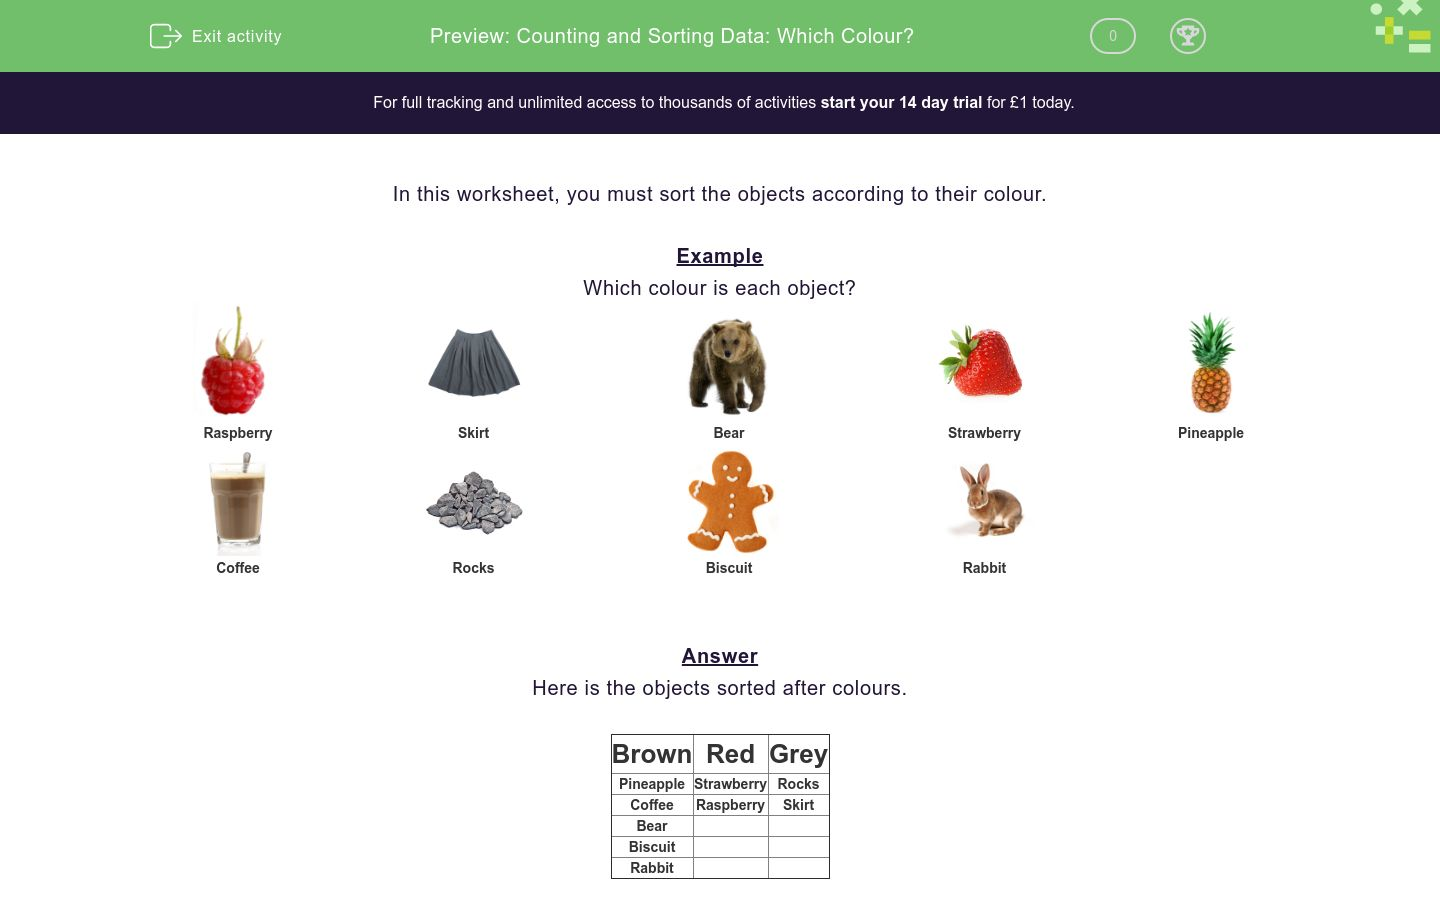 'Counting and Sorting Data: Which Colour?' worksheet